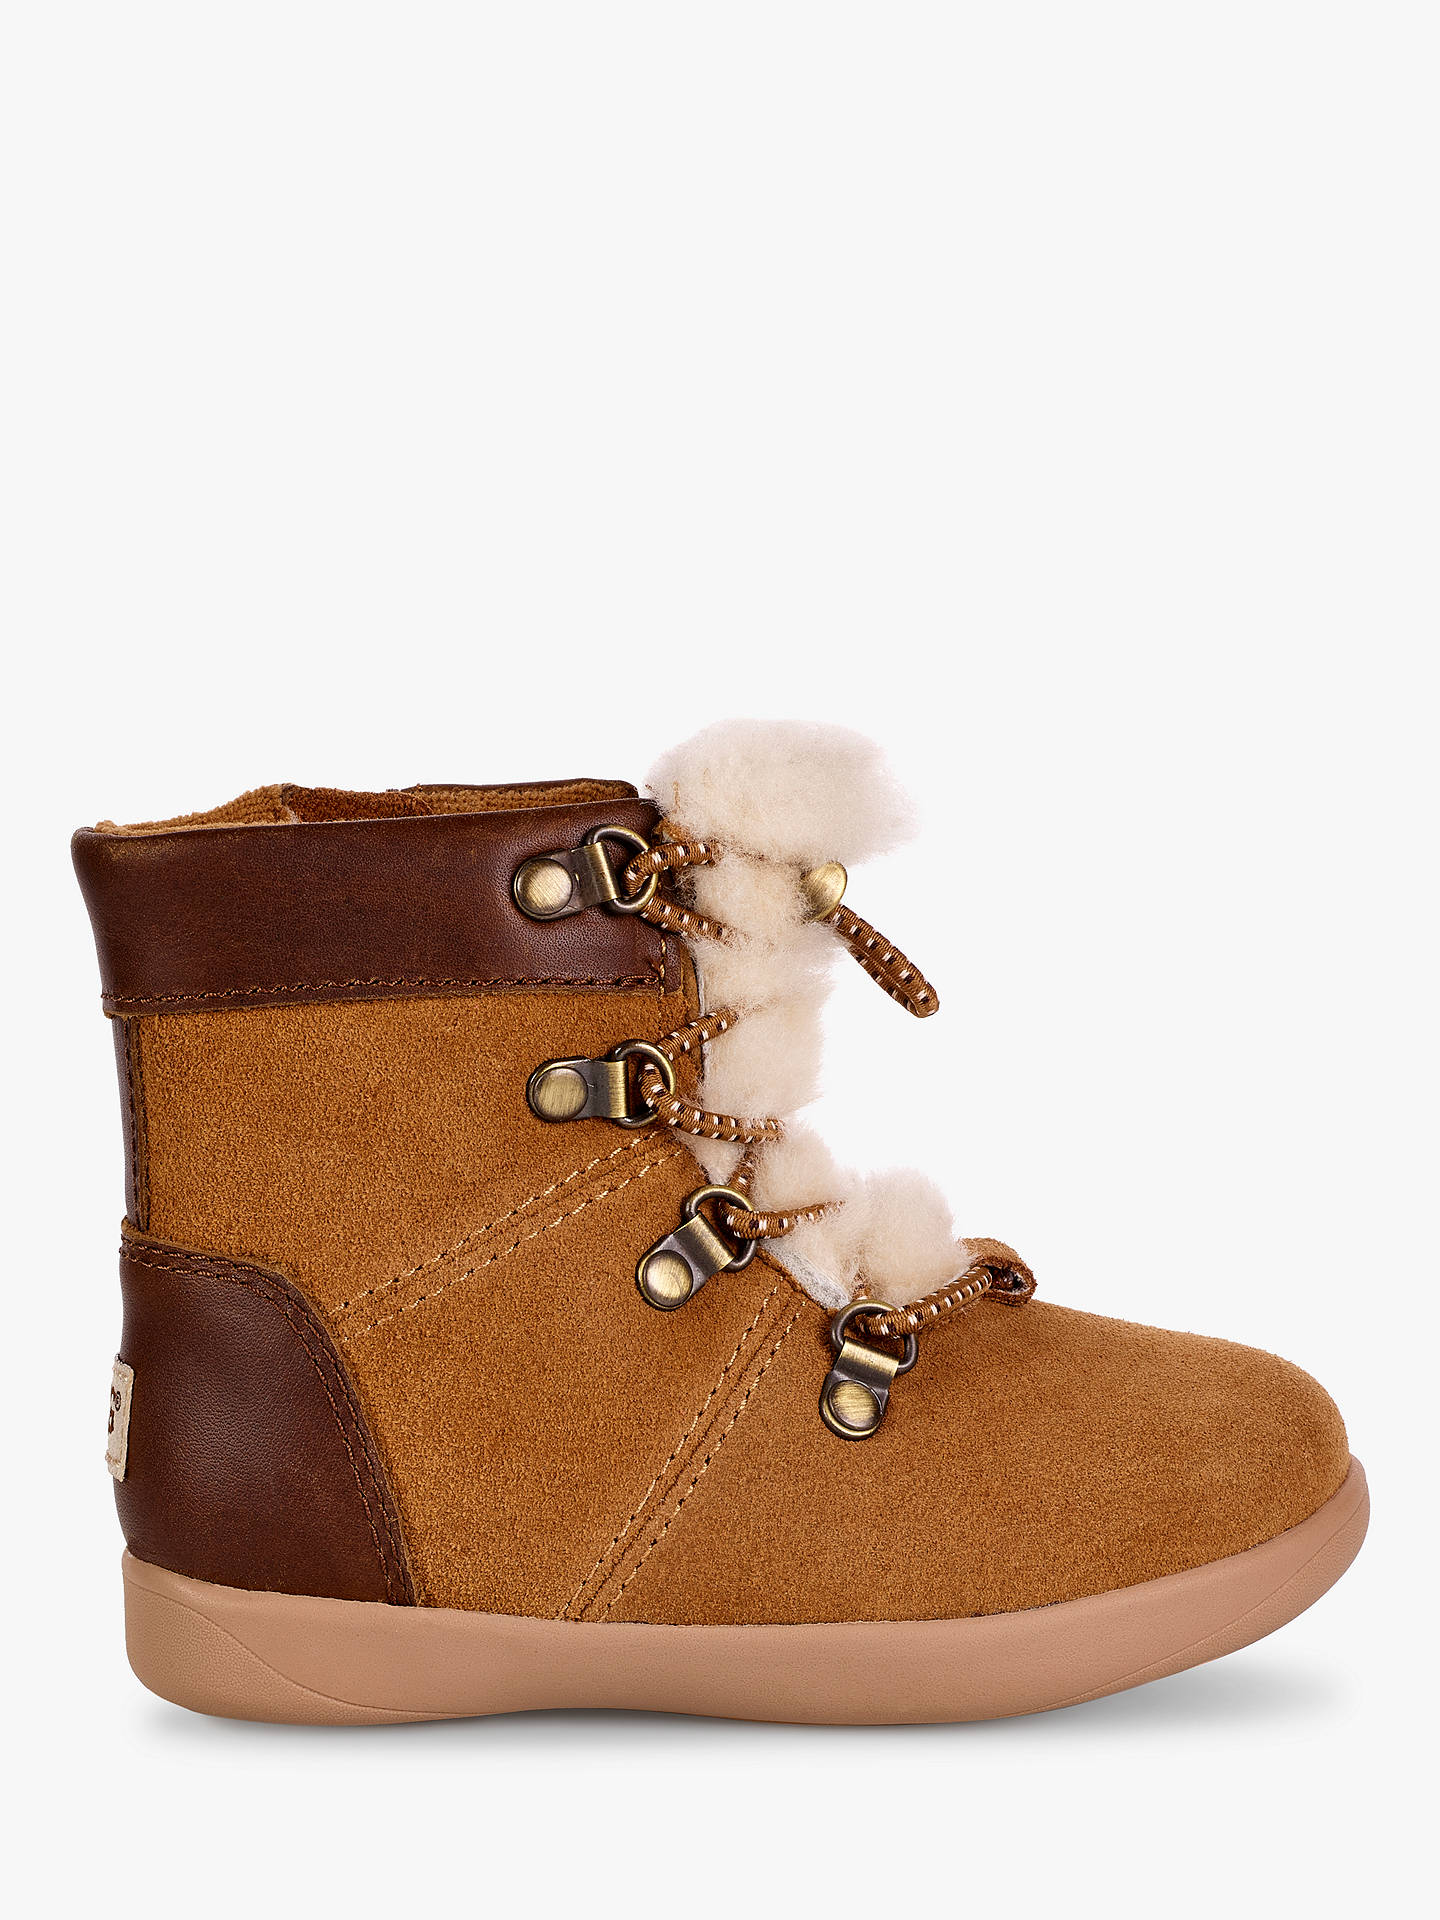 6a17c4a9490 UGG Children's Ager Boots, Chestnut Brown at John Lewis & Partners